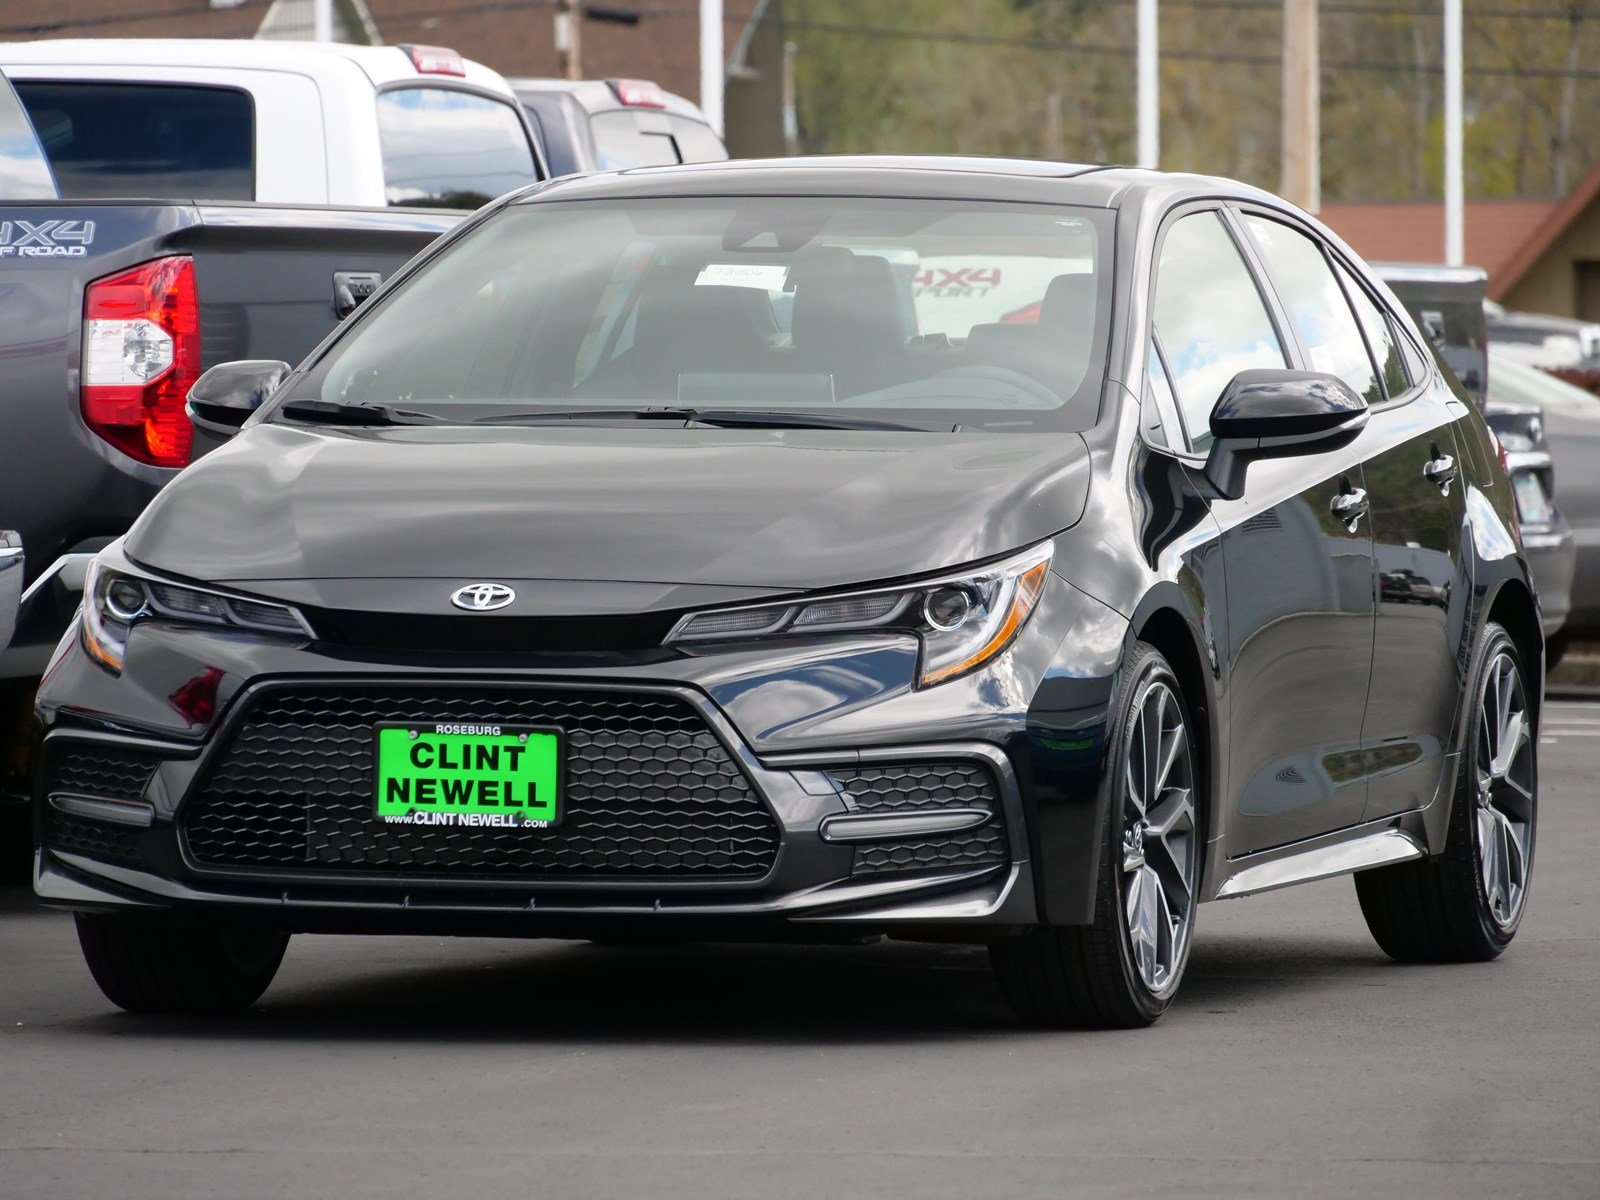 New 2020 Toyota Corolla Xse 4dr Car In Roseburg T20006 Clint